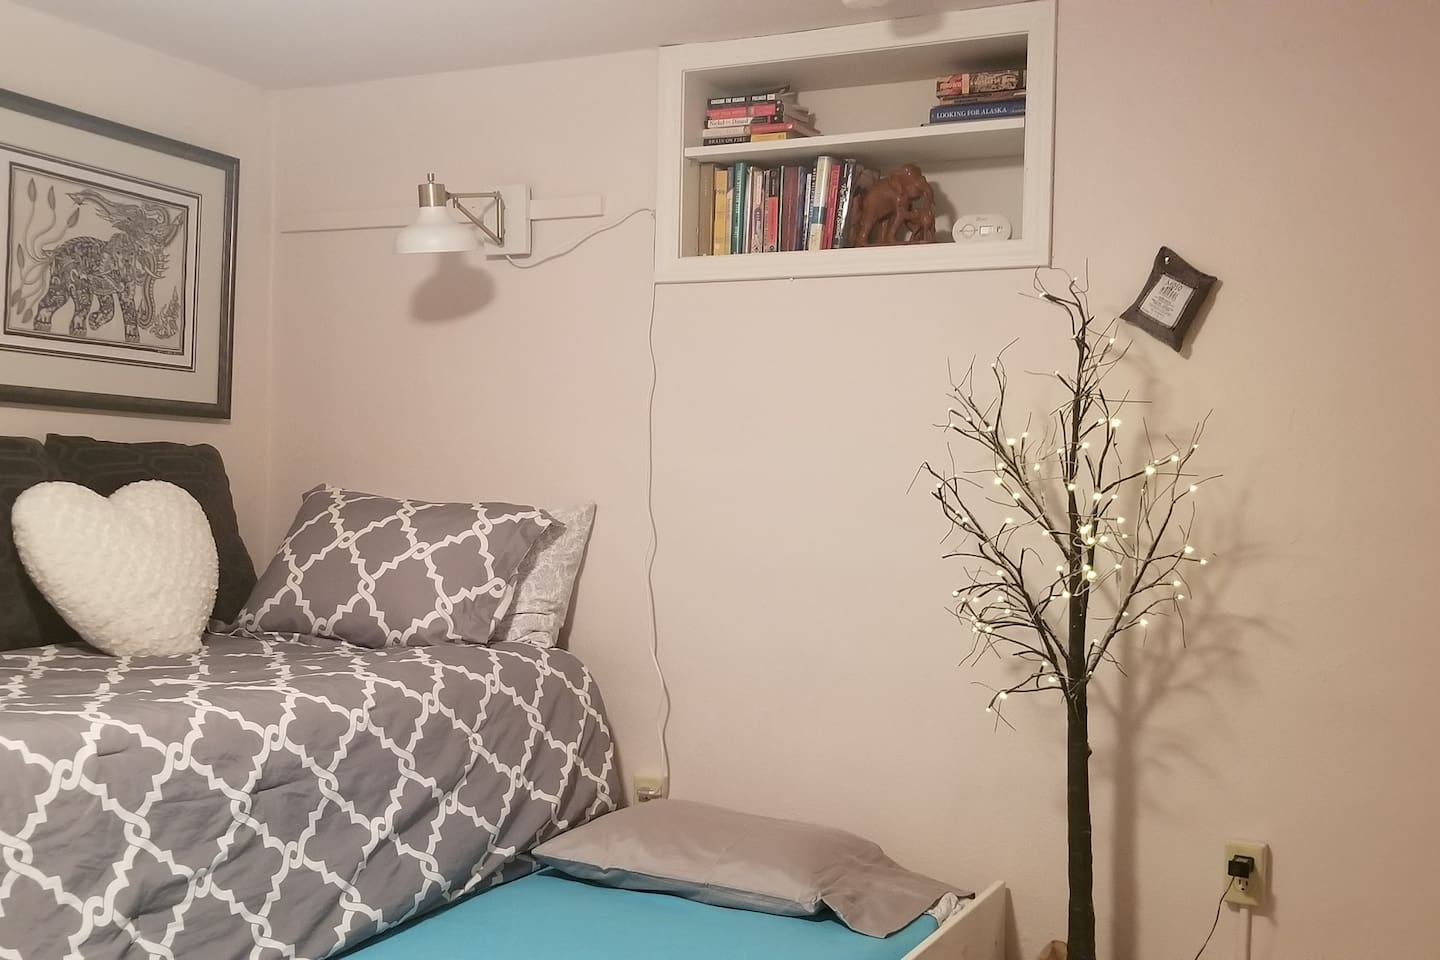 The Elephant Room has lots of good lighting for those who like to read in bed at night or students who need to study;)